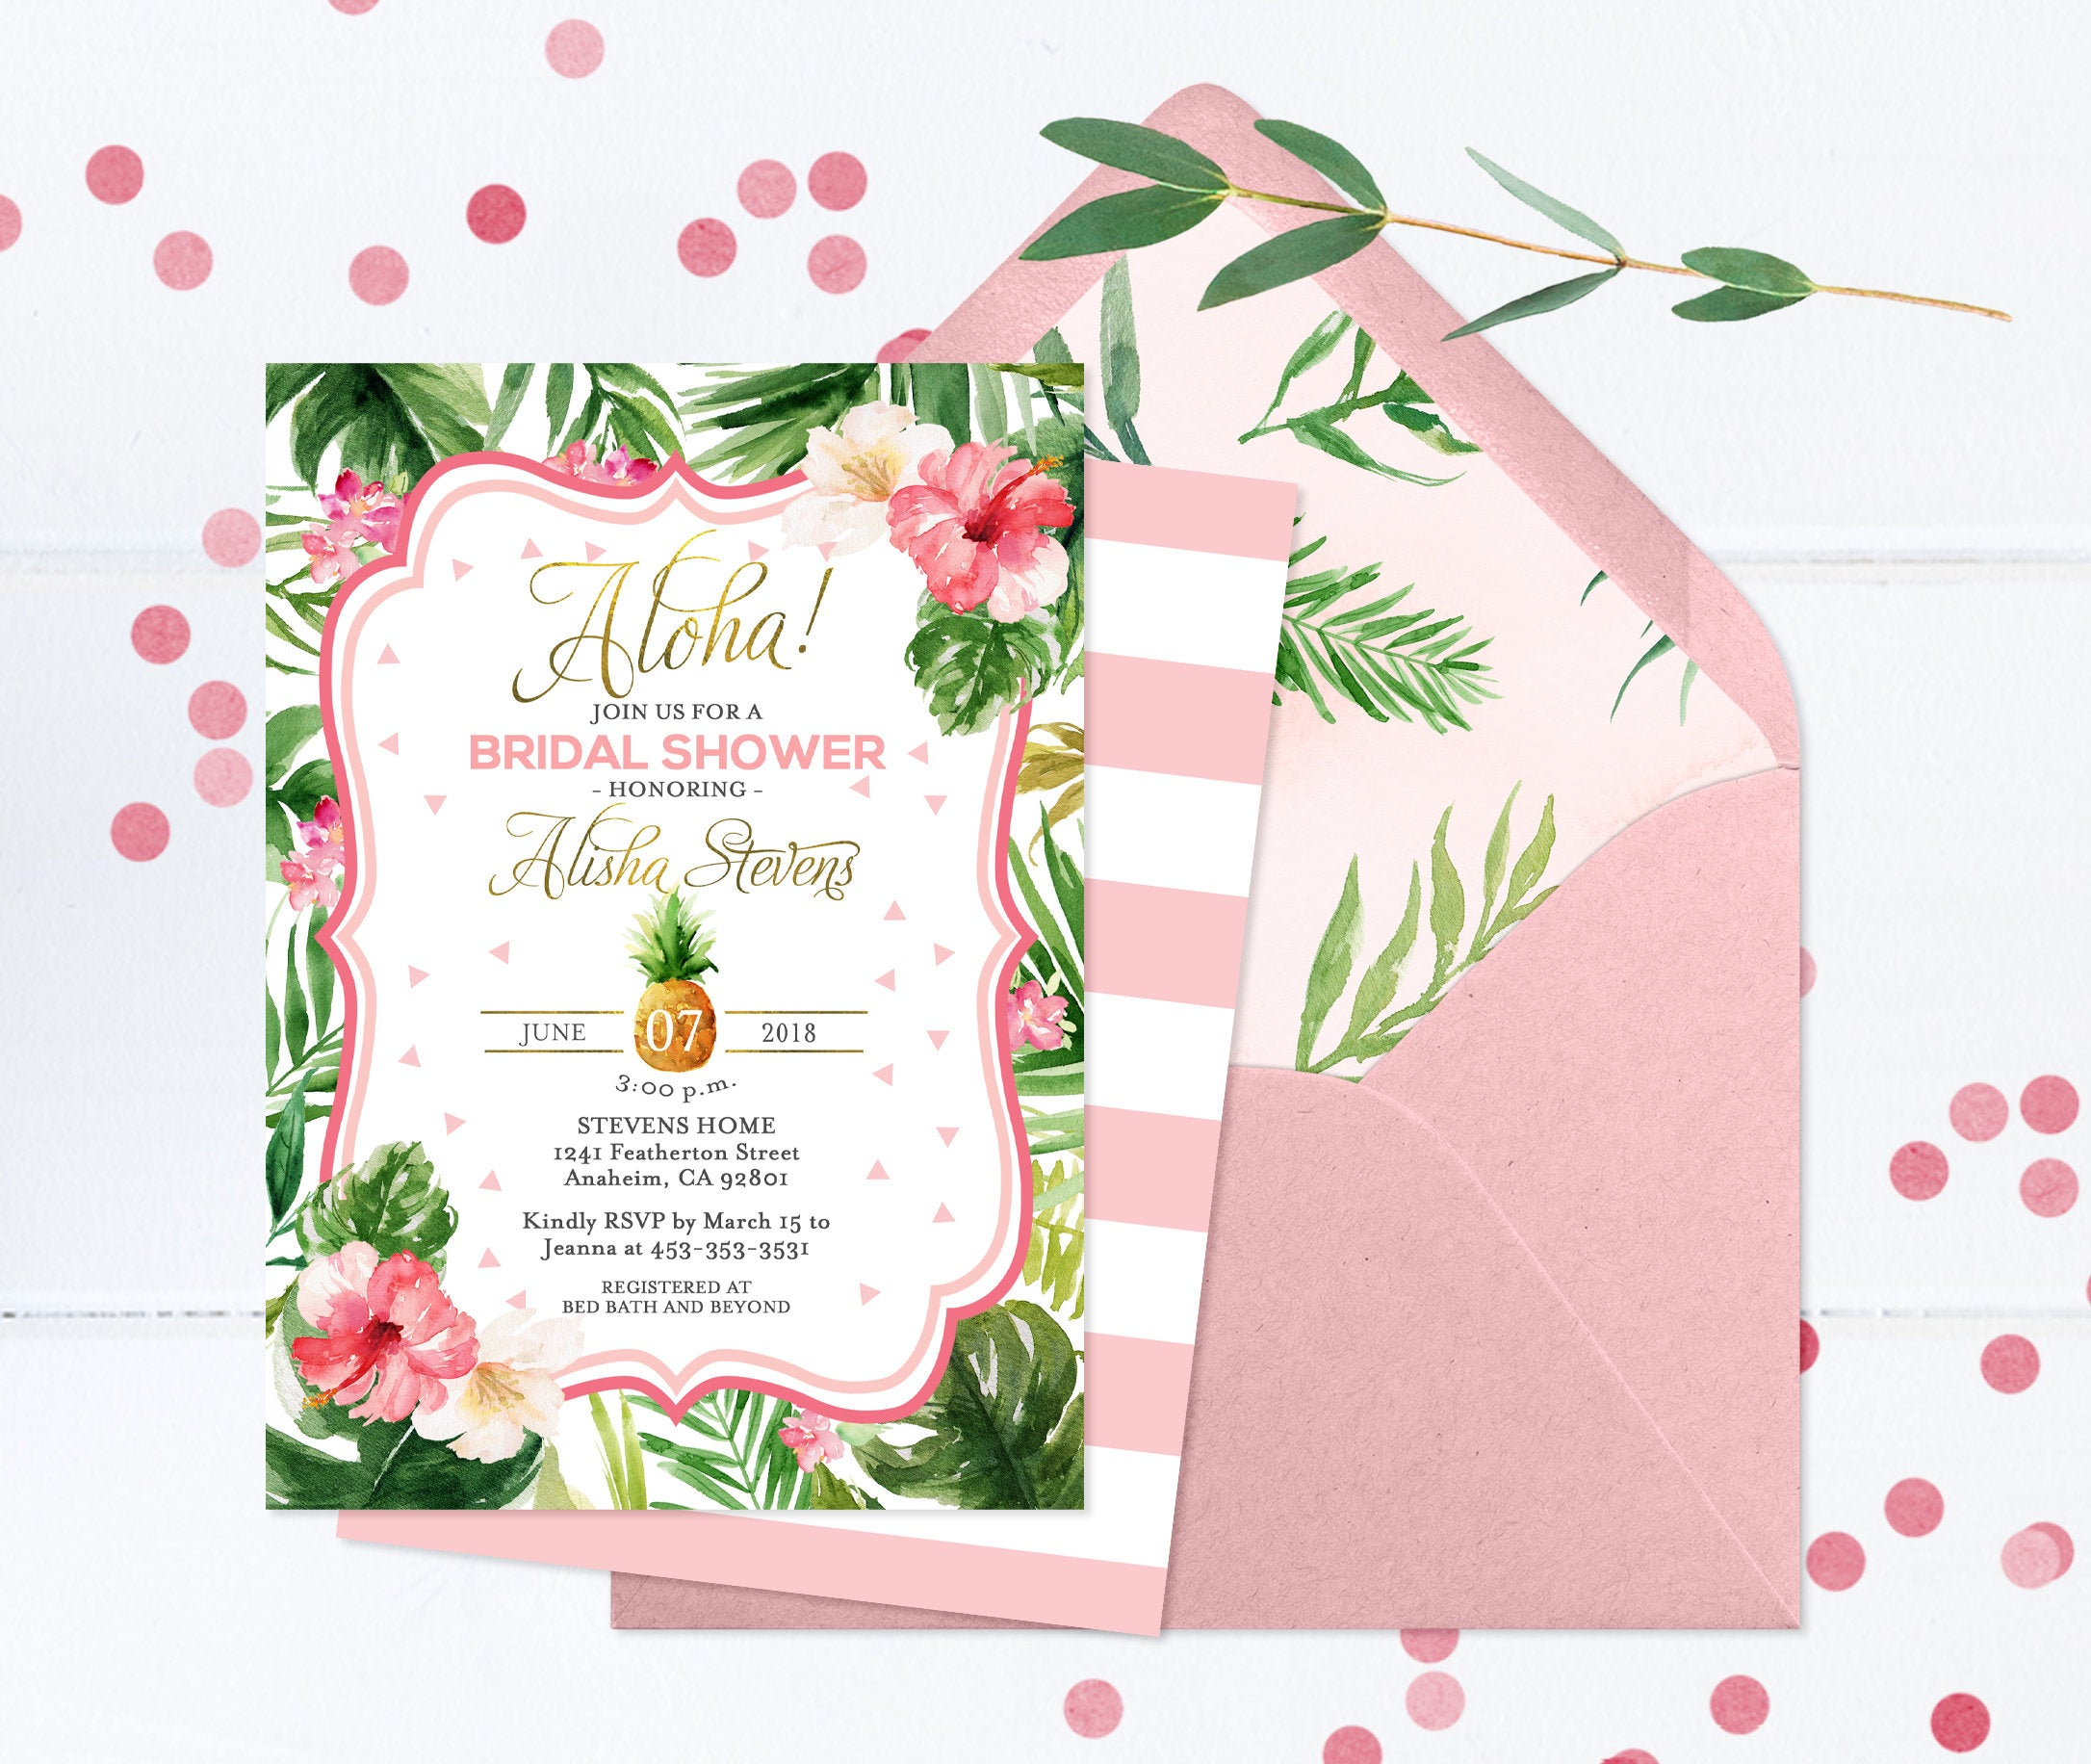 Tropical bridal shower invitation aloha bridal shower invites tropical bridal shower invitation aloha bridal shower invites hawaiian bridal shower luau bridal filmwisefo